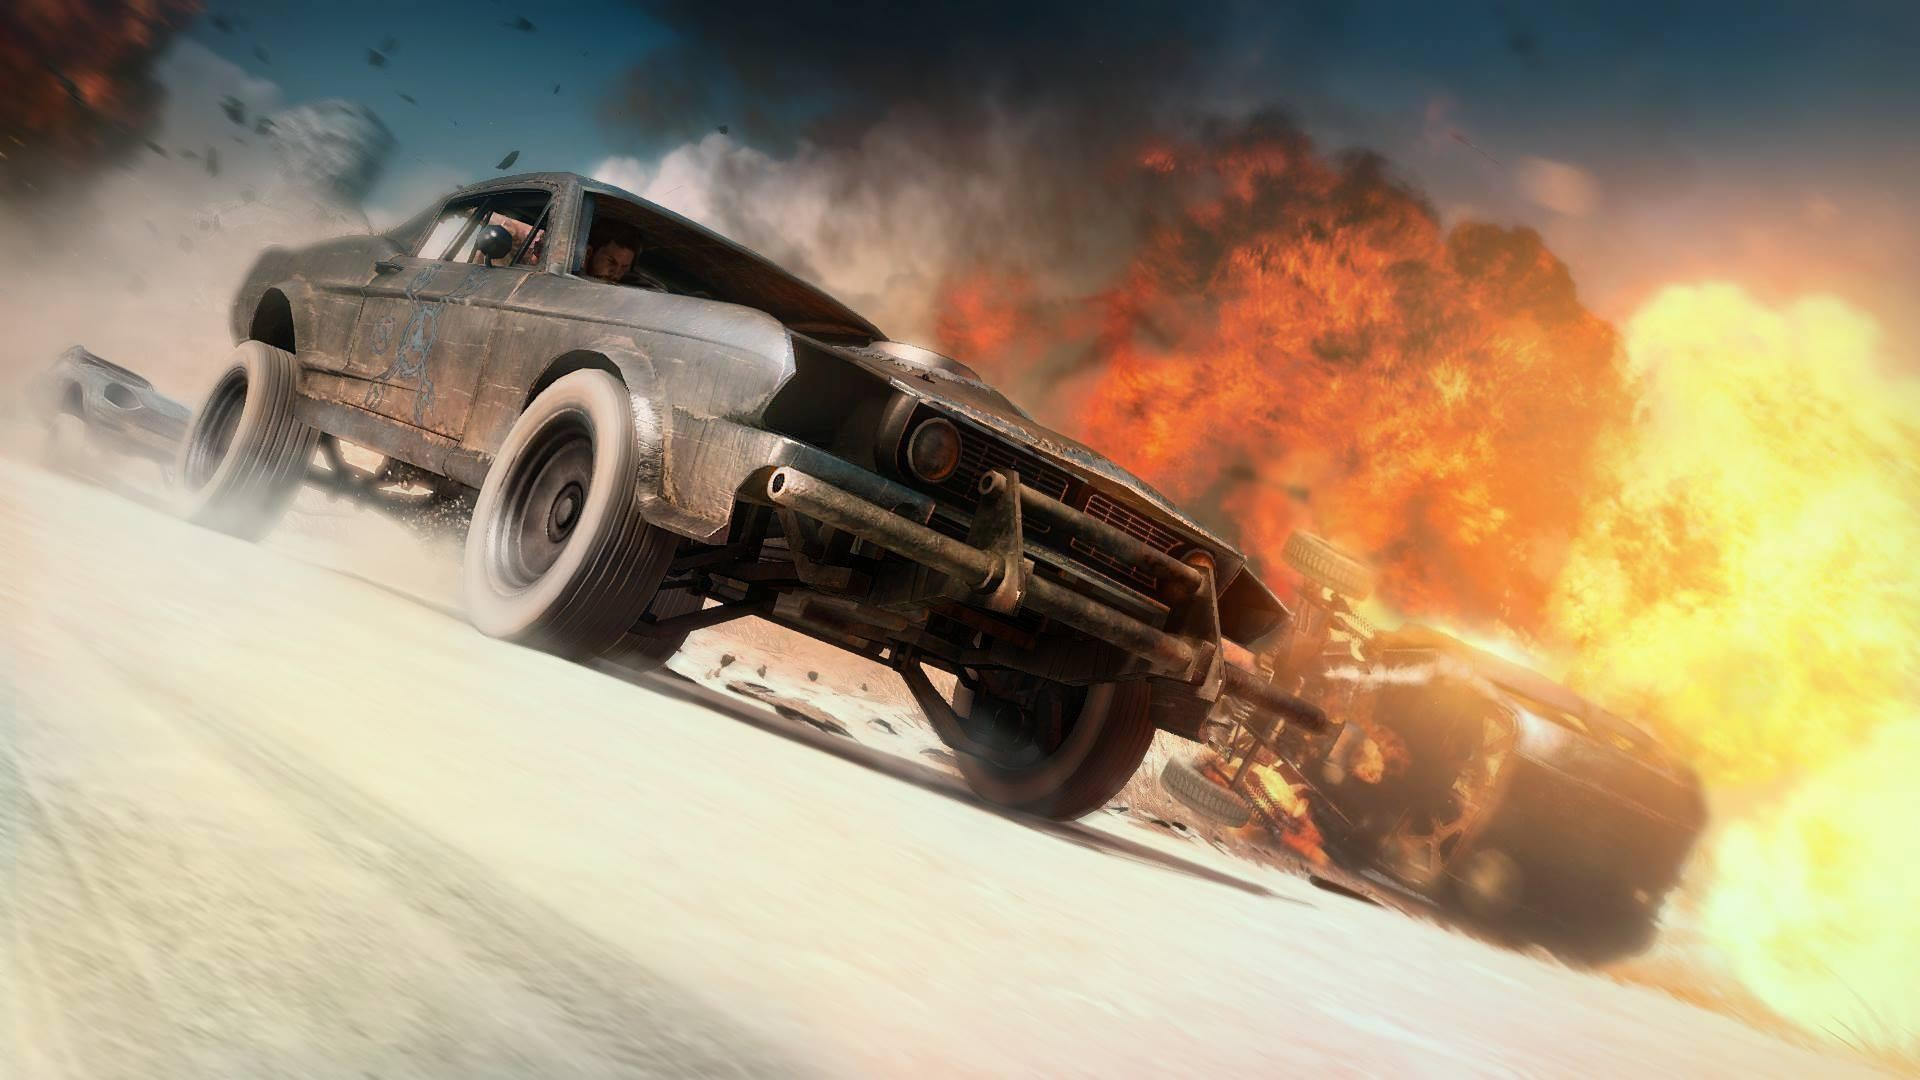 wallpaper.wiki-Mad-max-game-1920×1080-1080p-PIC-